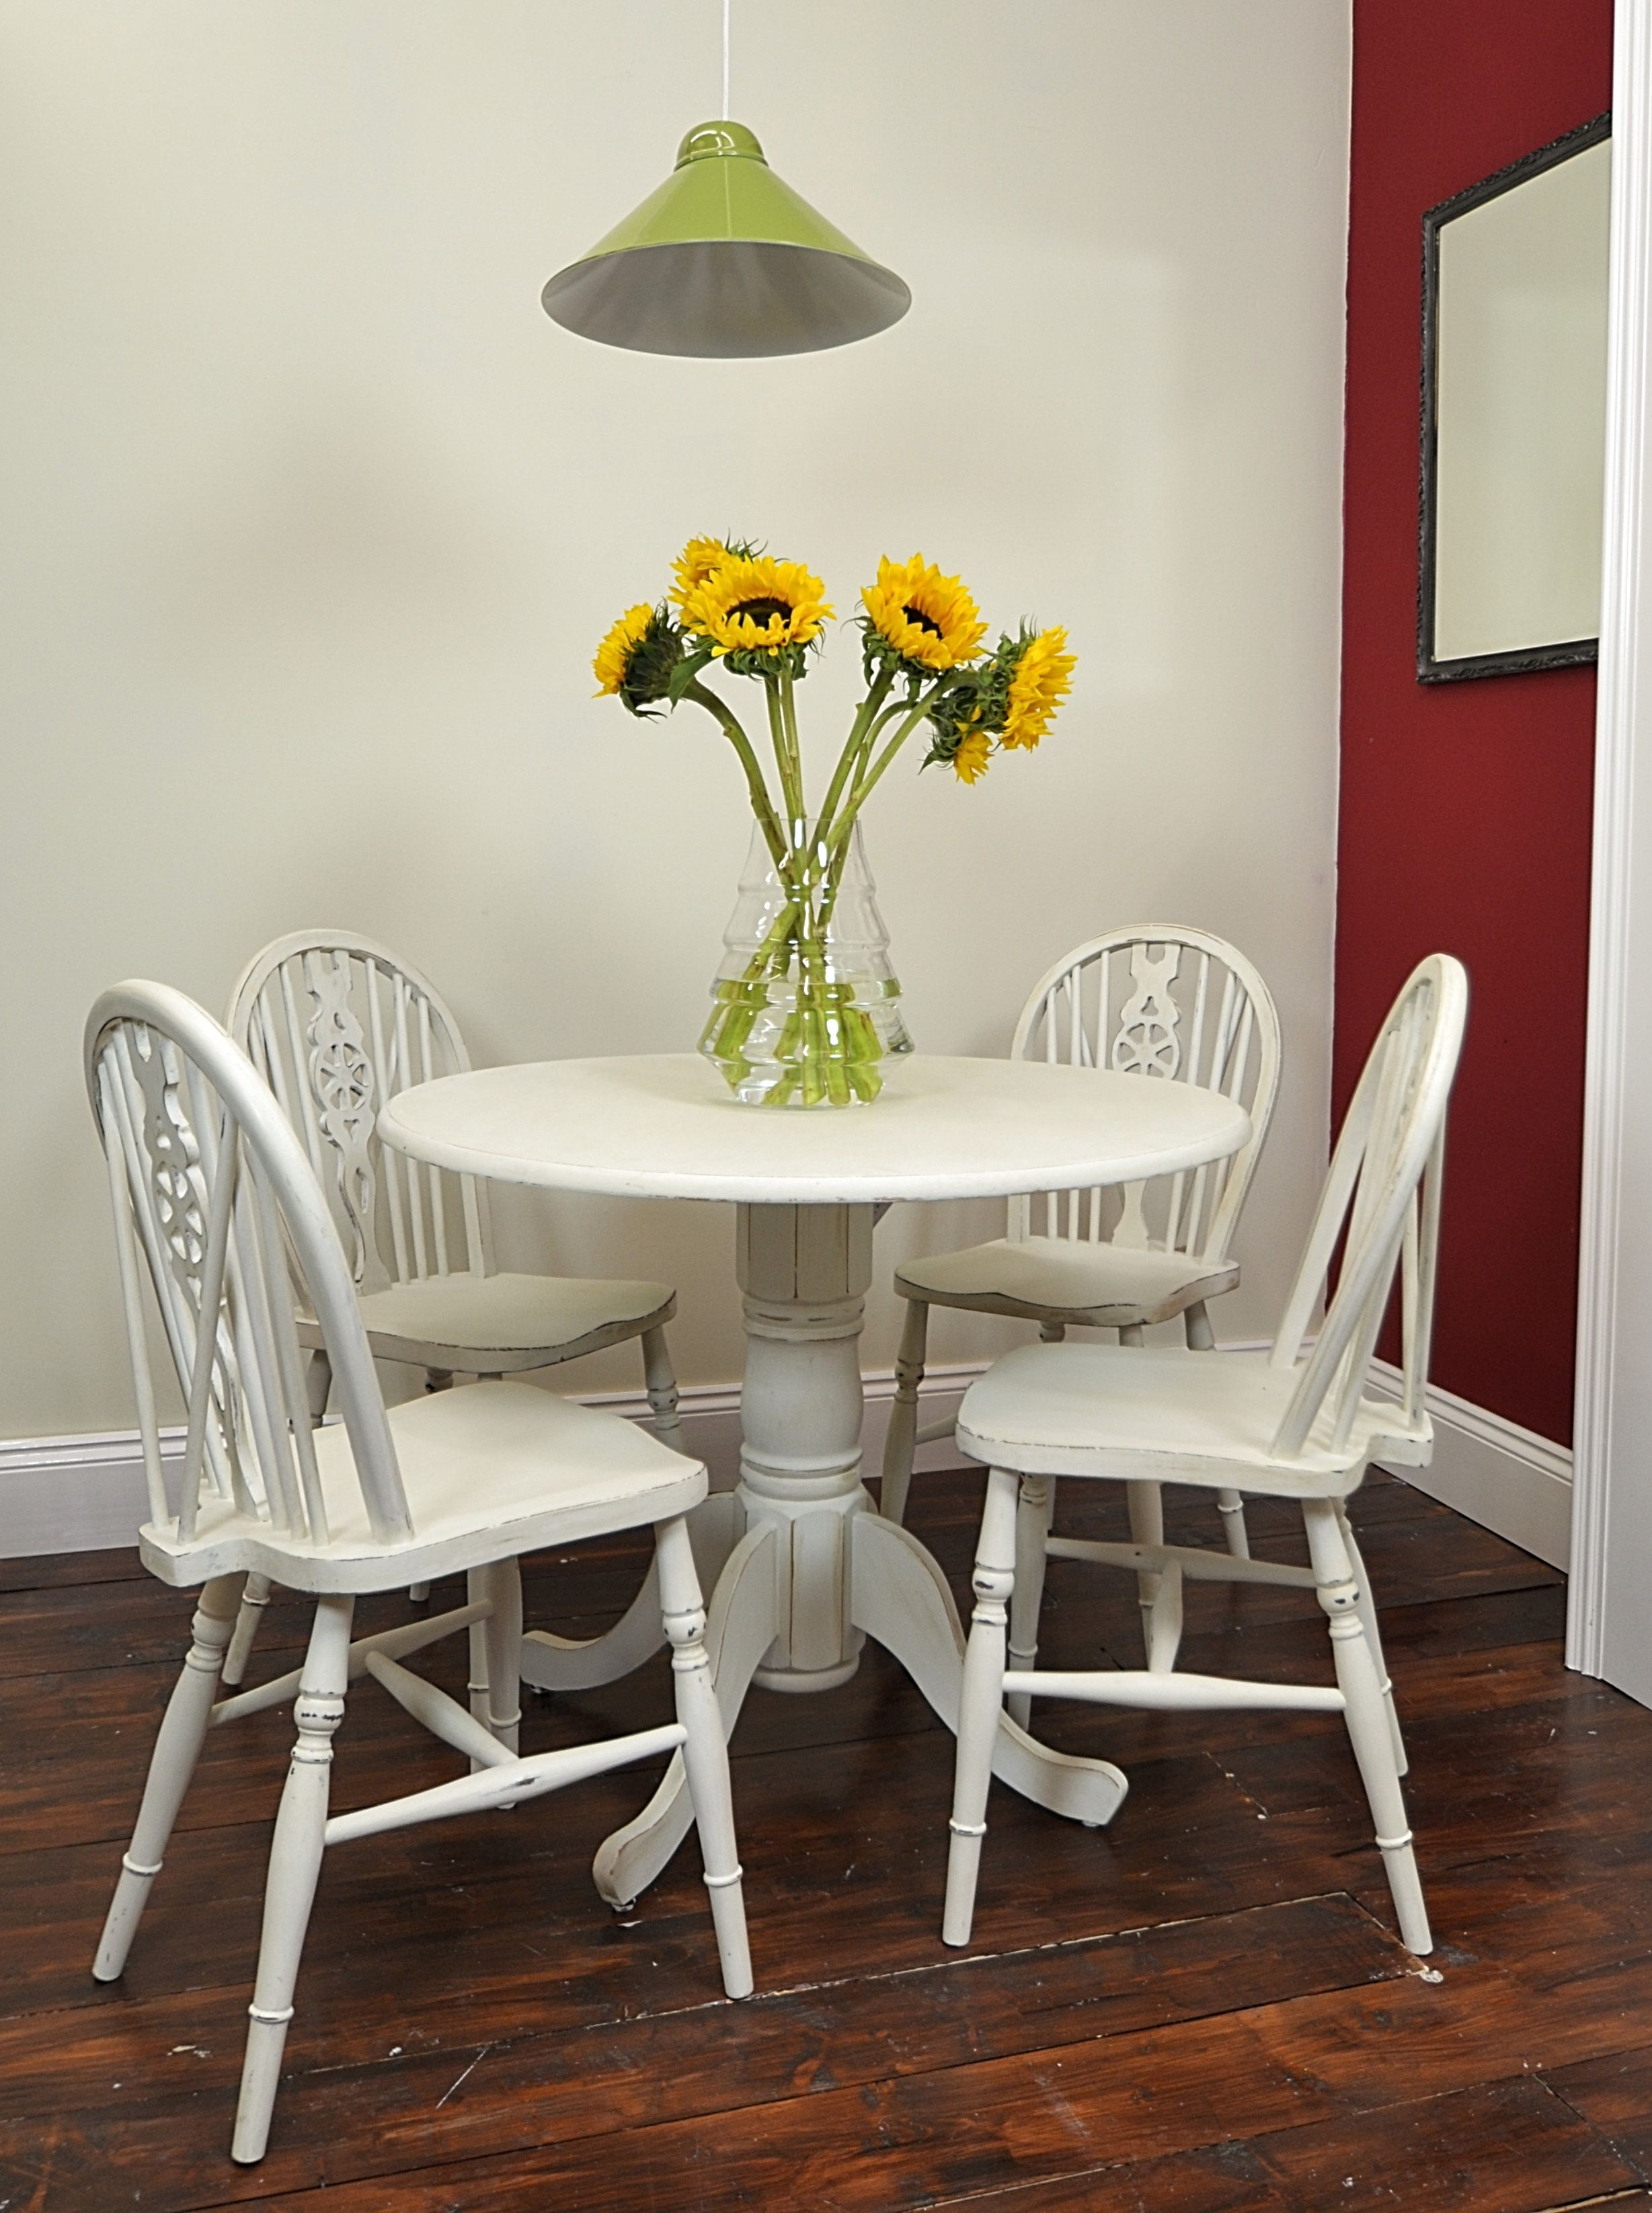 Small round table chair set painted in old white my favorites pinterest dining room - Shabby chic round dining table and chairs ...